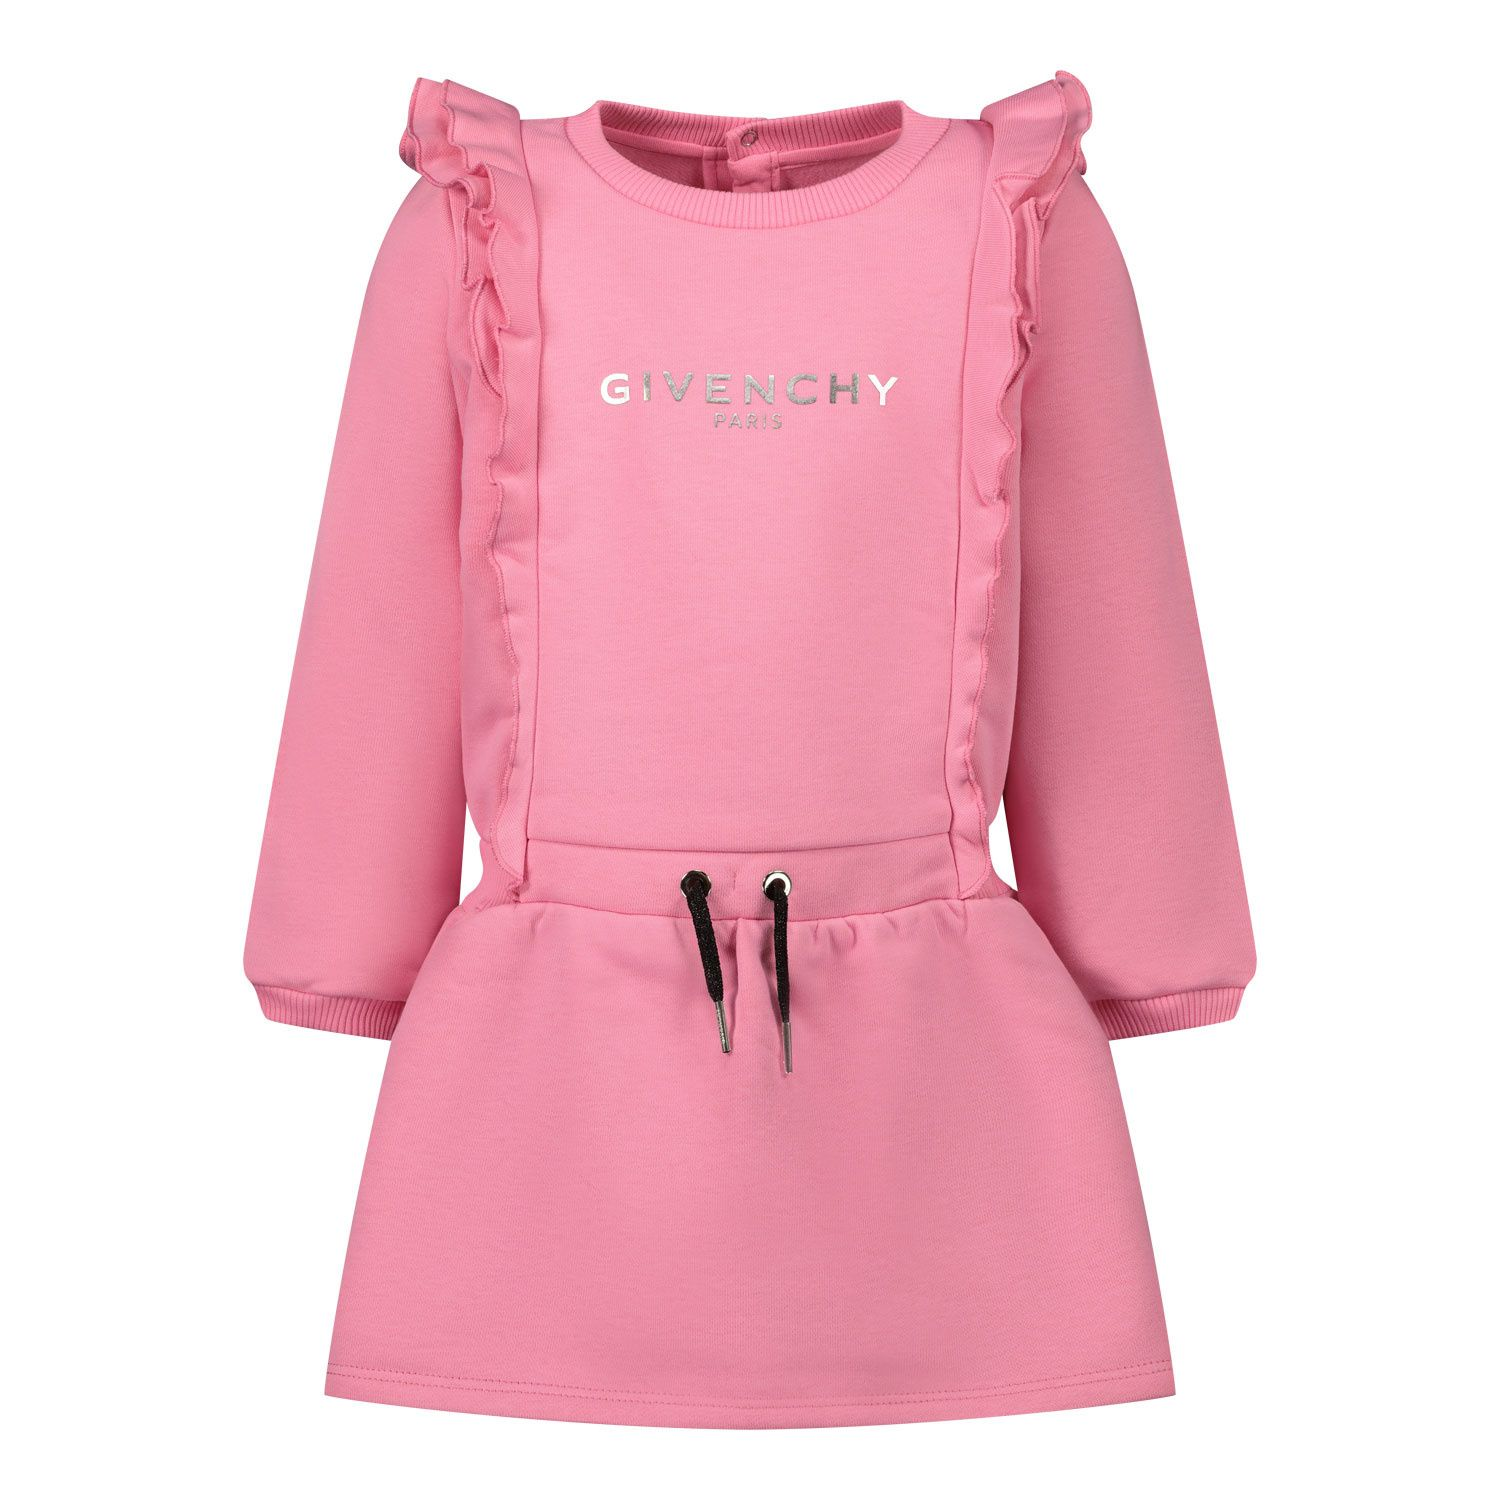 Picture of Givenchy H02061 baby dress fuchsia